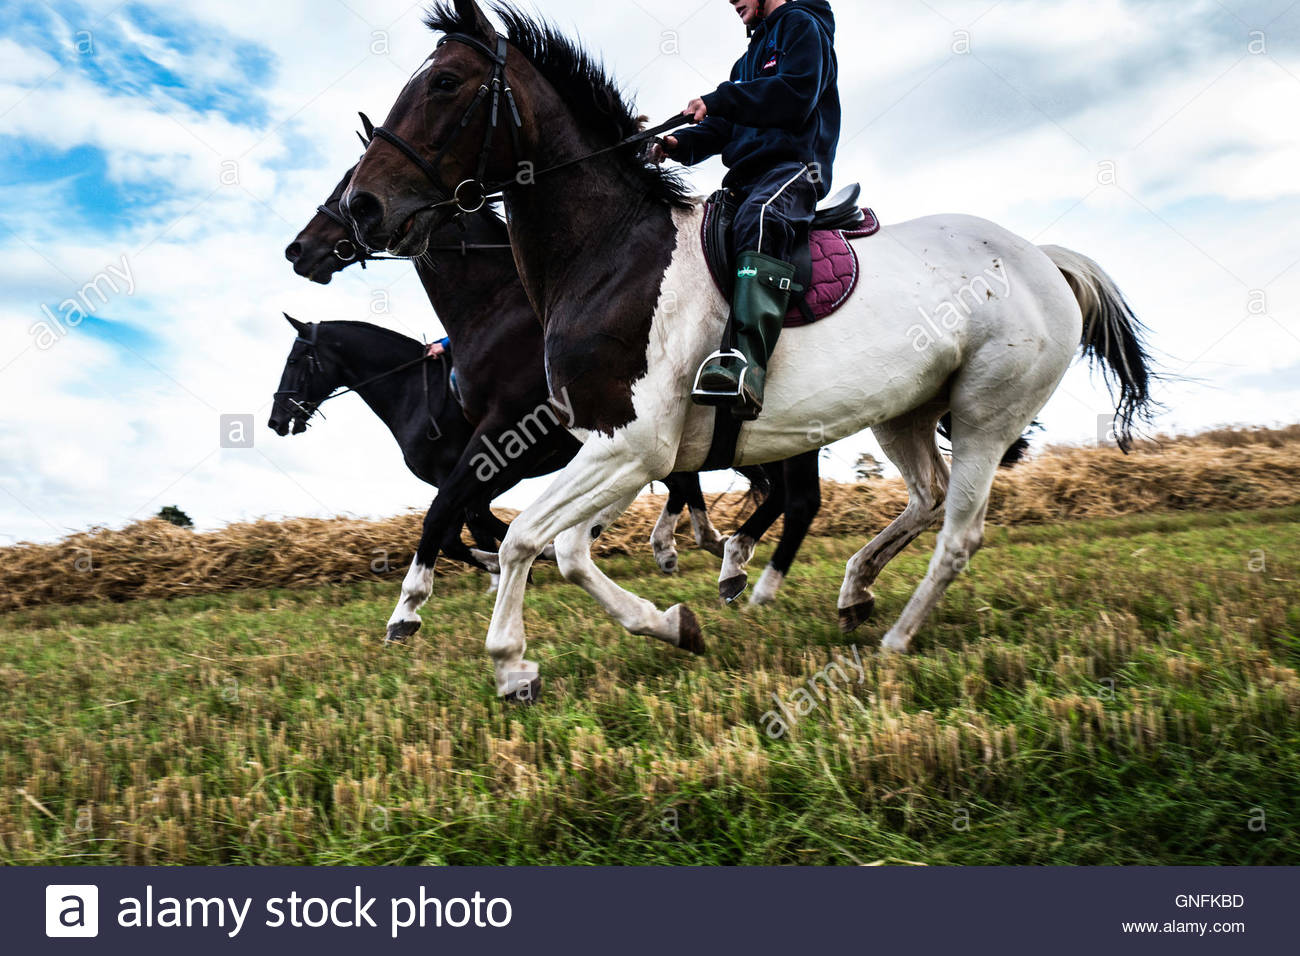 Morebattle, Kelso, Scottish Borders, UK. 31st August 2016.  The MacFayden family canter ponies in a stubble field - Stock Image